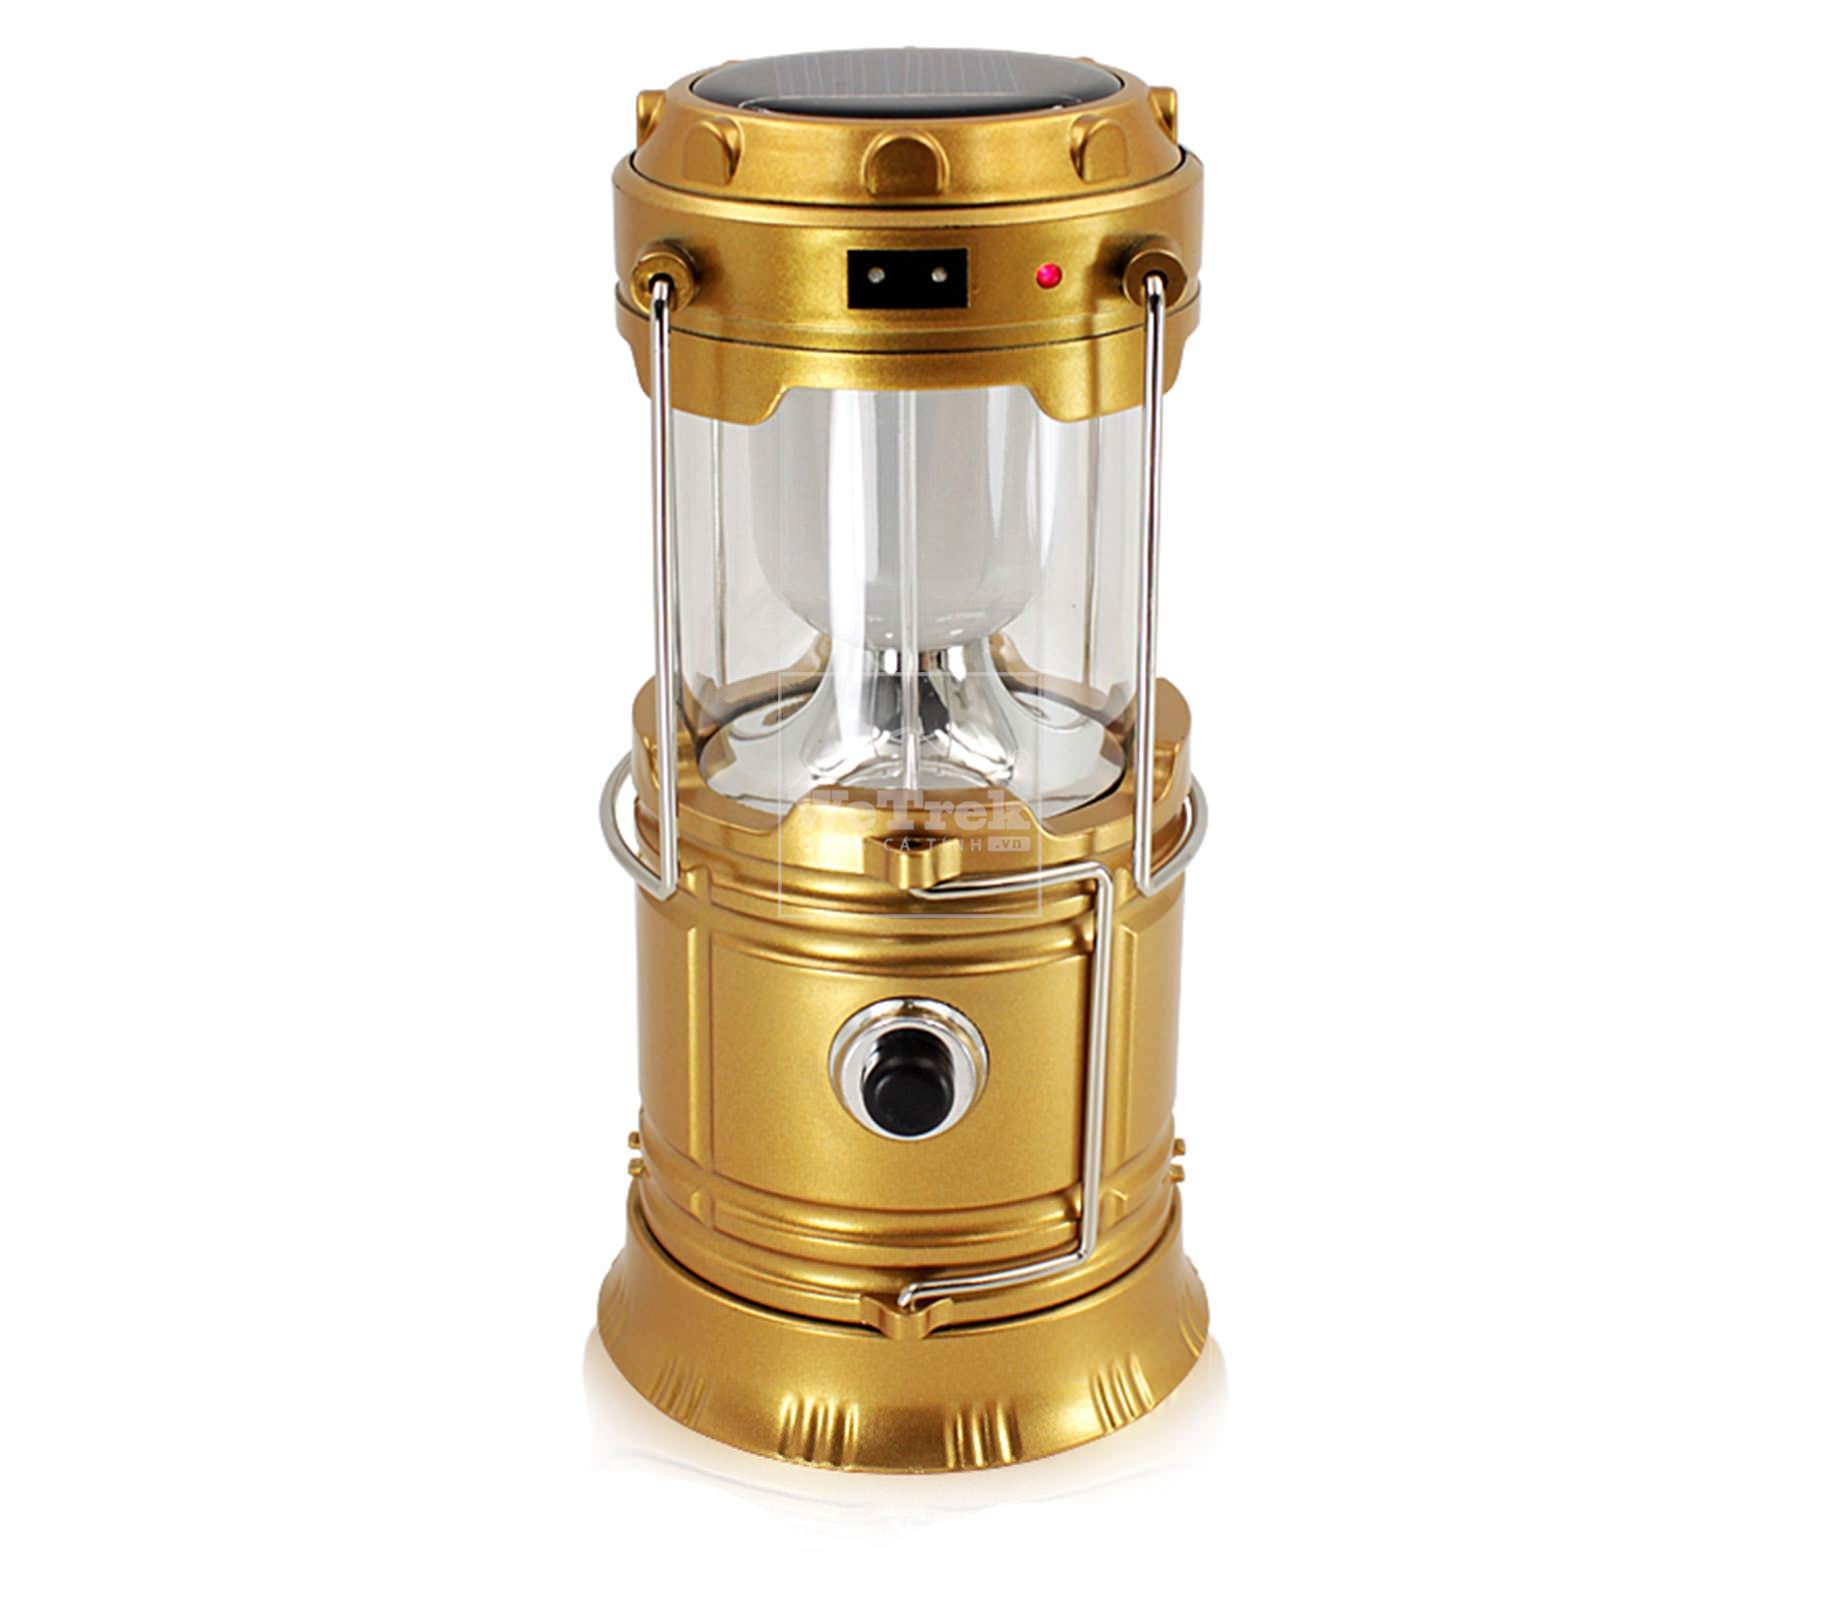 Den-leu-1W-6-LED-Rechargeable-Camping-Lantern-SH-5900T-7851_HasThumb.jpg